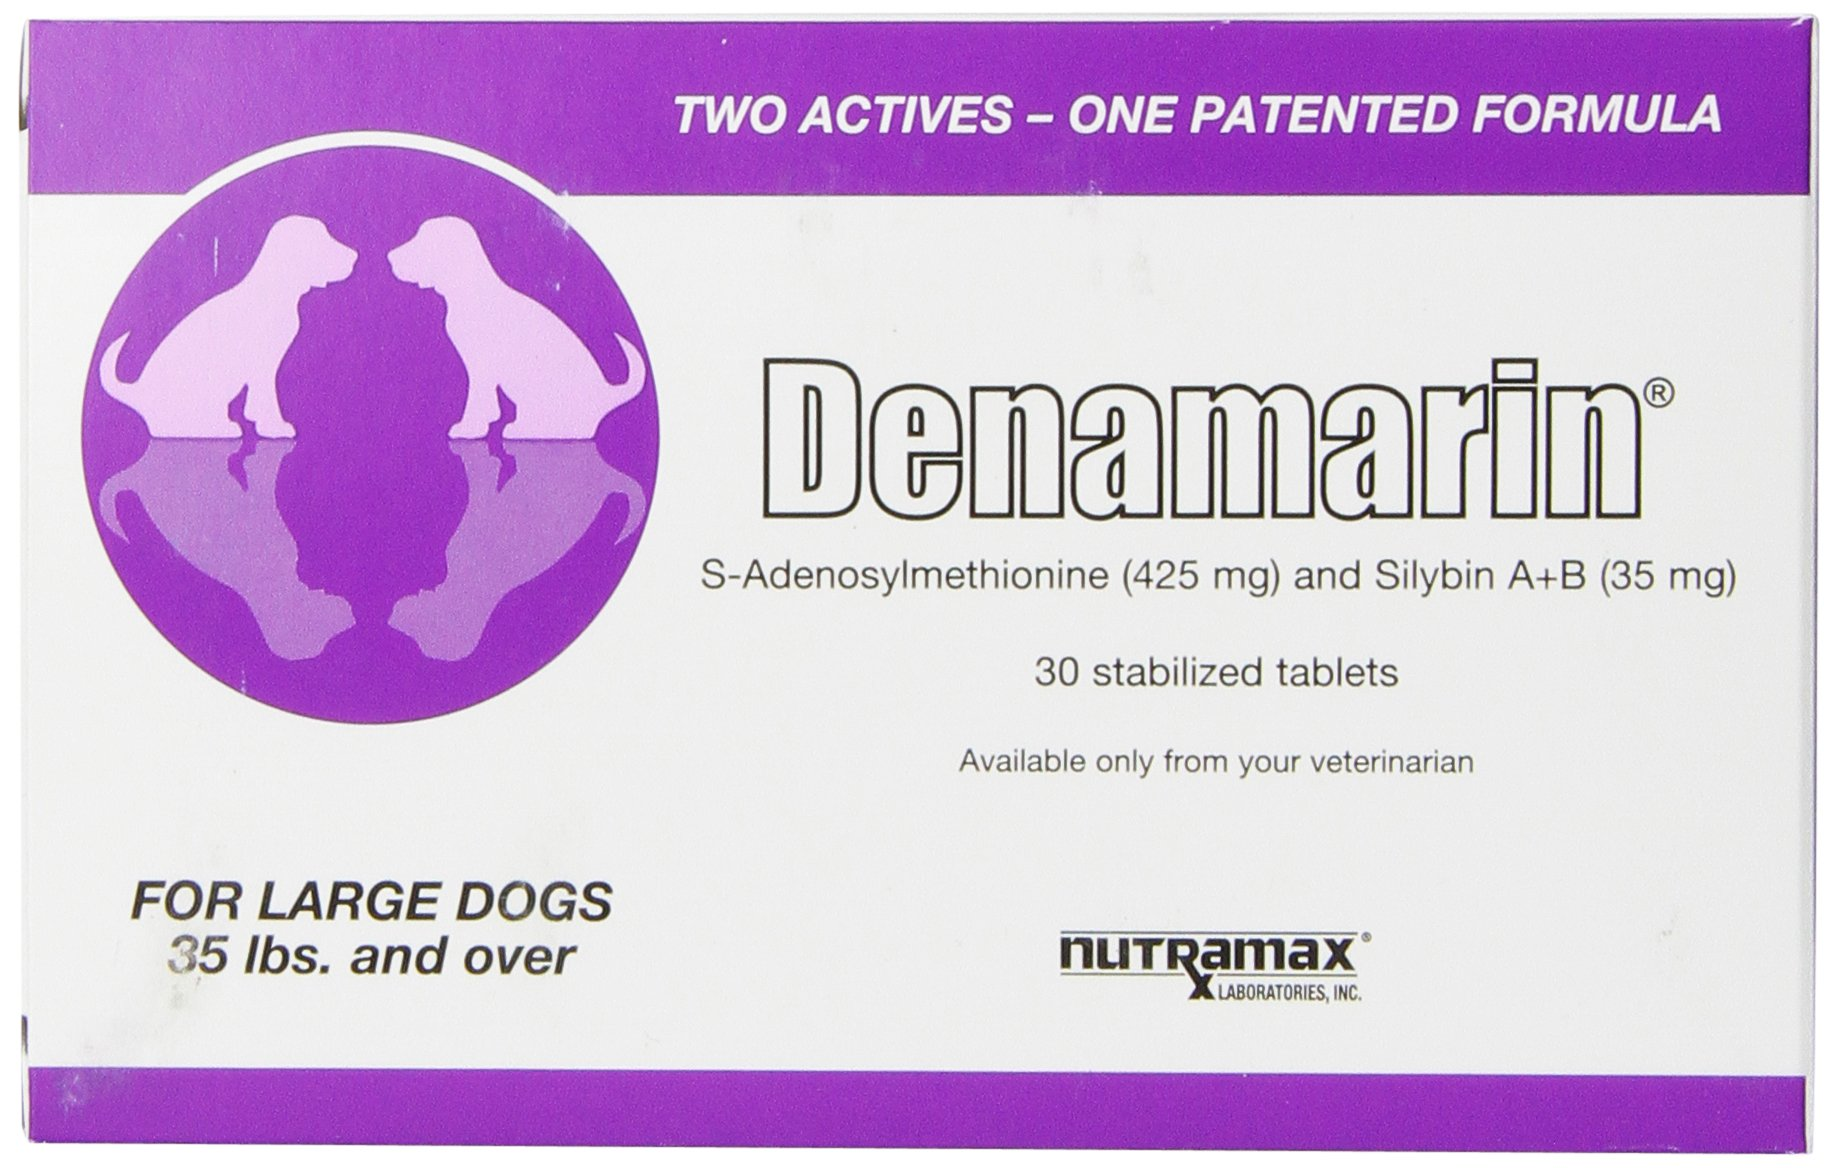 Nutramax Denamarin Tablets for Cats and Dogs 30 Large Dog (Over 35 lb)